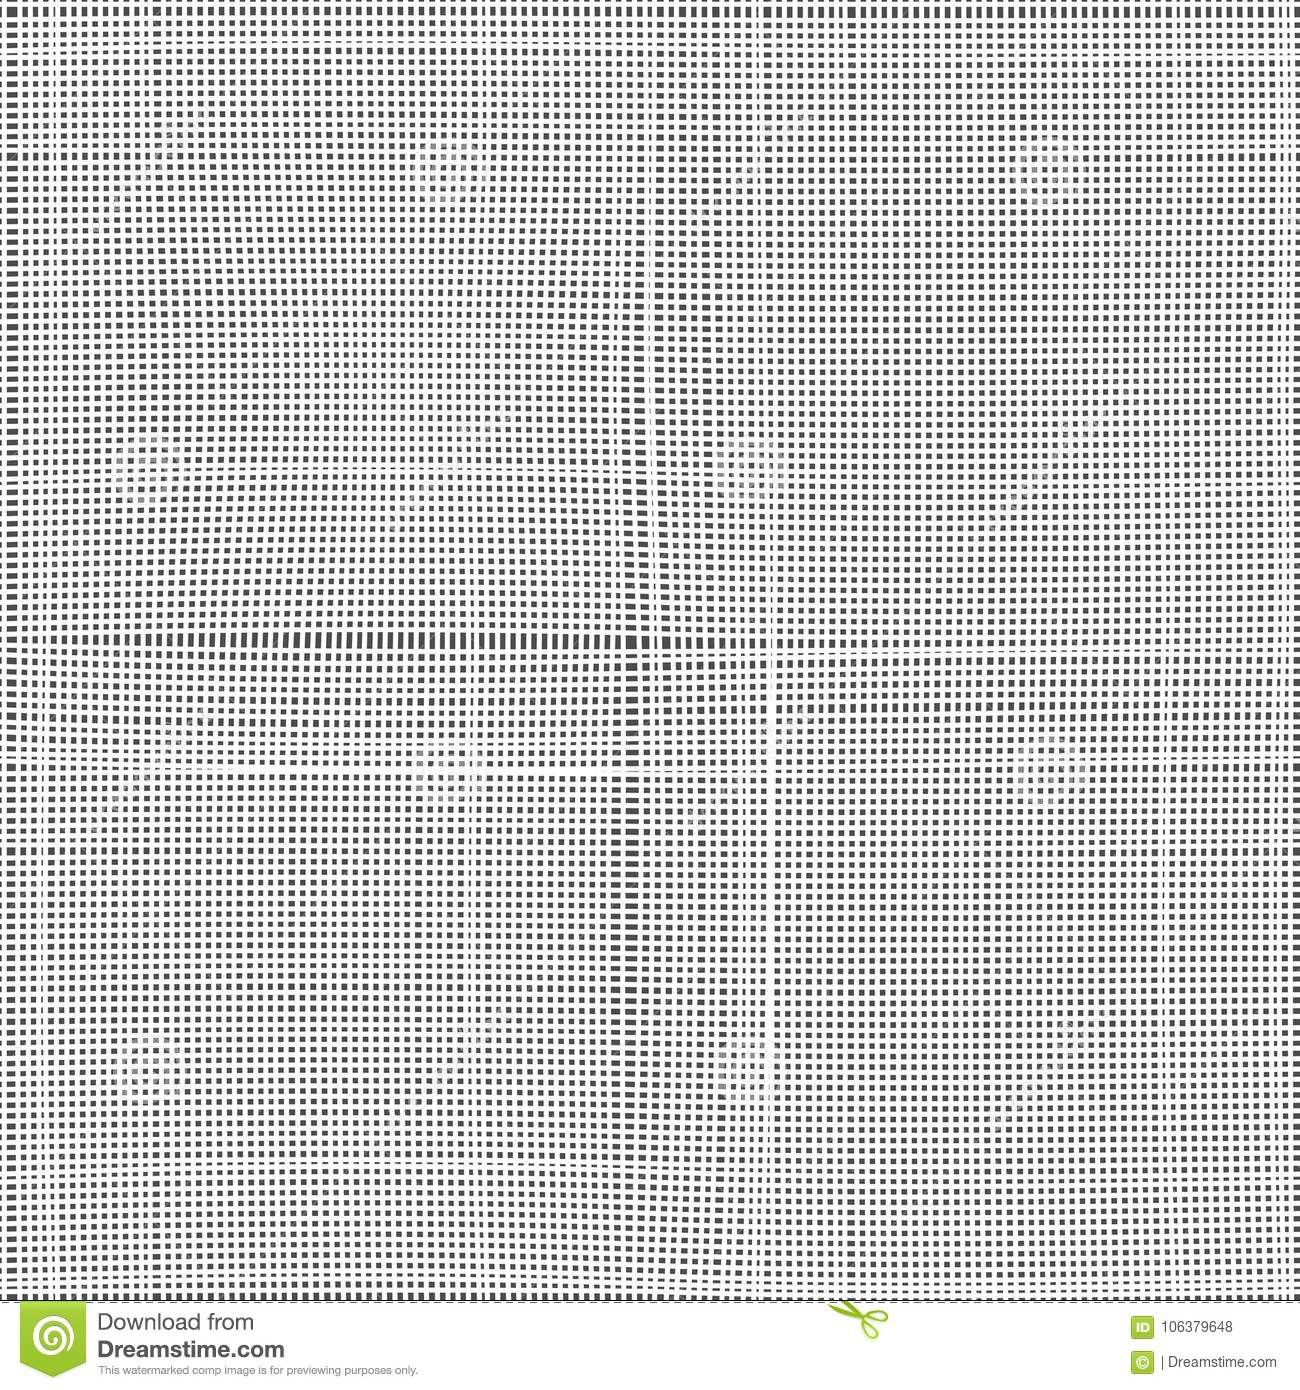 White Canvas To Use As Background, Texture, Mask Or Bump. Seamless Vector  Pattern. Light Gray Fabric Texture. Vector